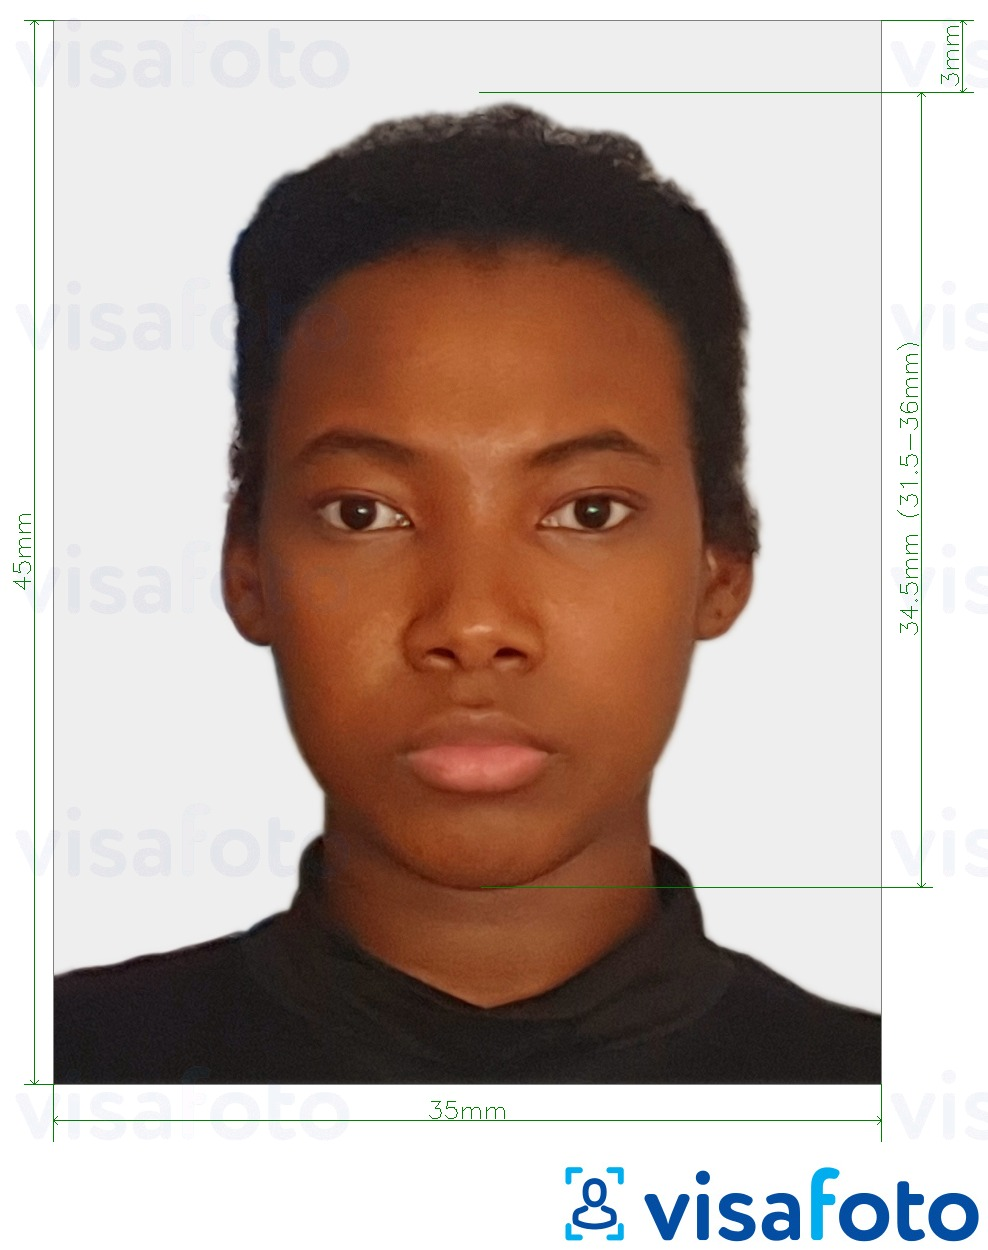 Example of photo for Zimbabwe passport 3.5x4.5 cm (35x45 mm) with exact size specification